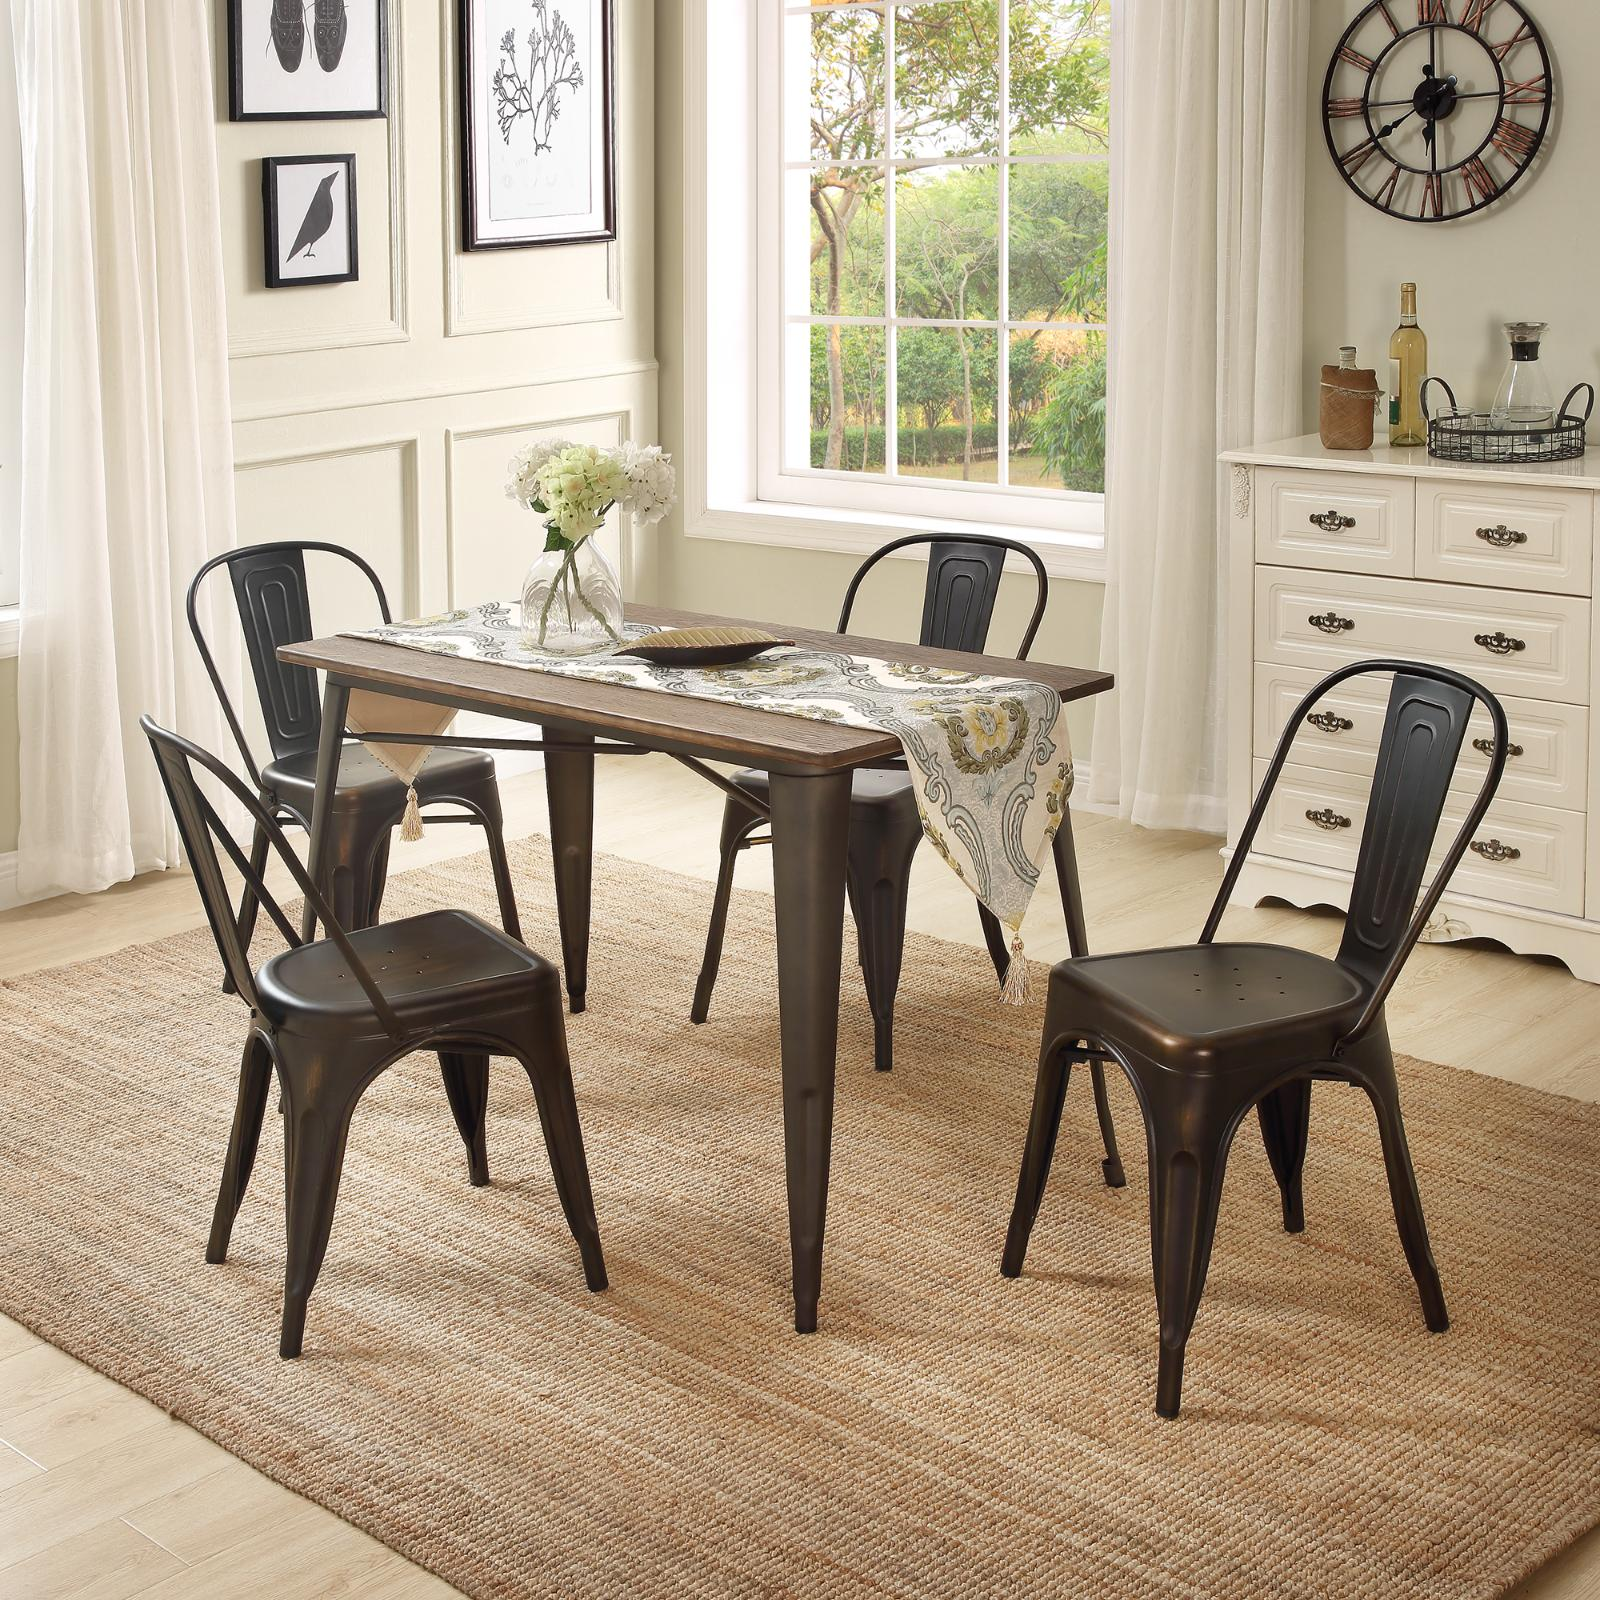 5 Piece Dining Set Table Chairs Bistro